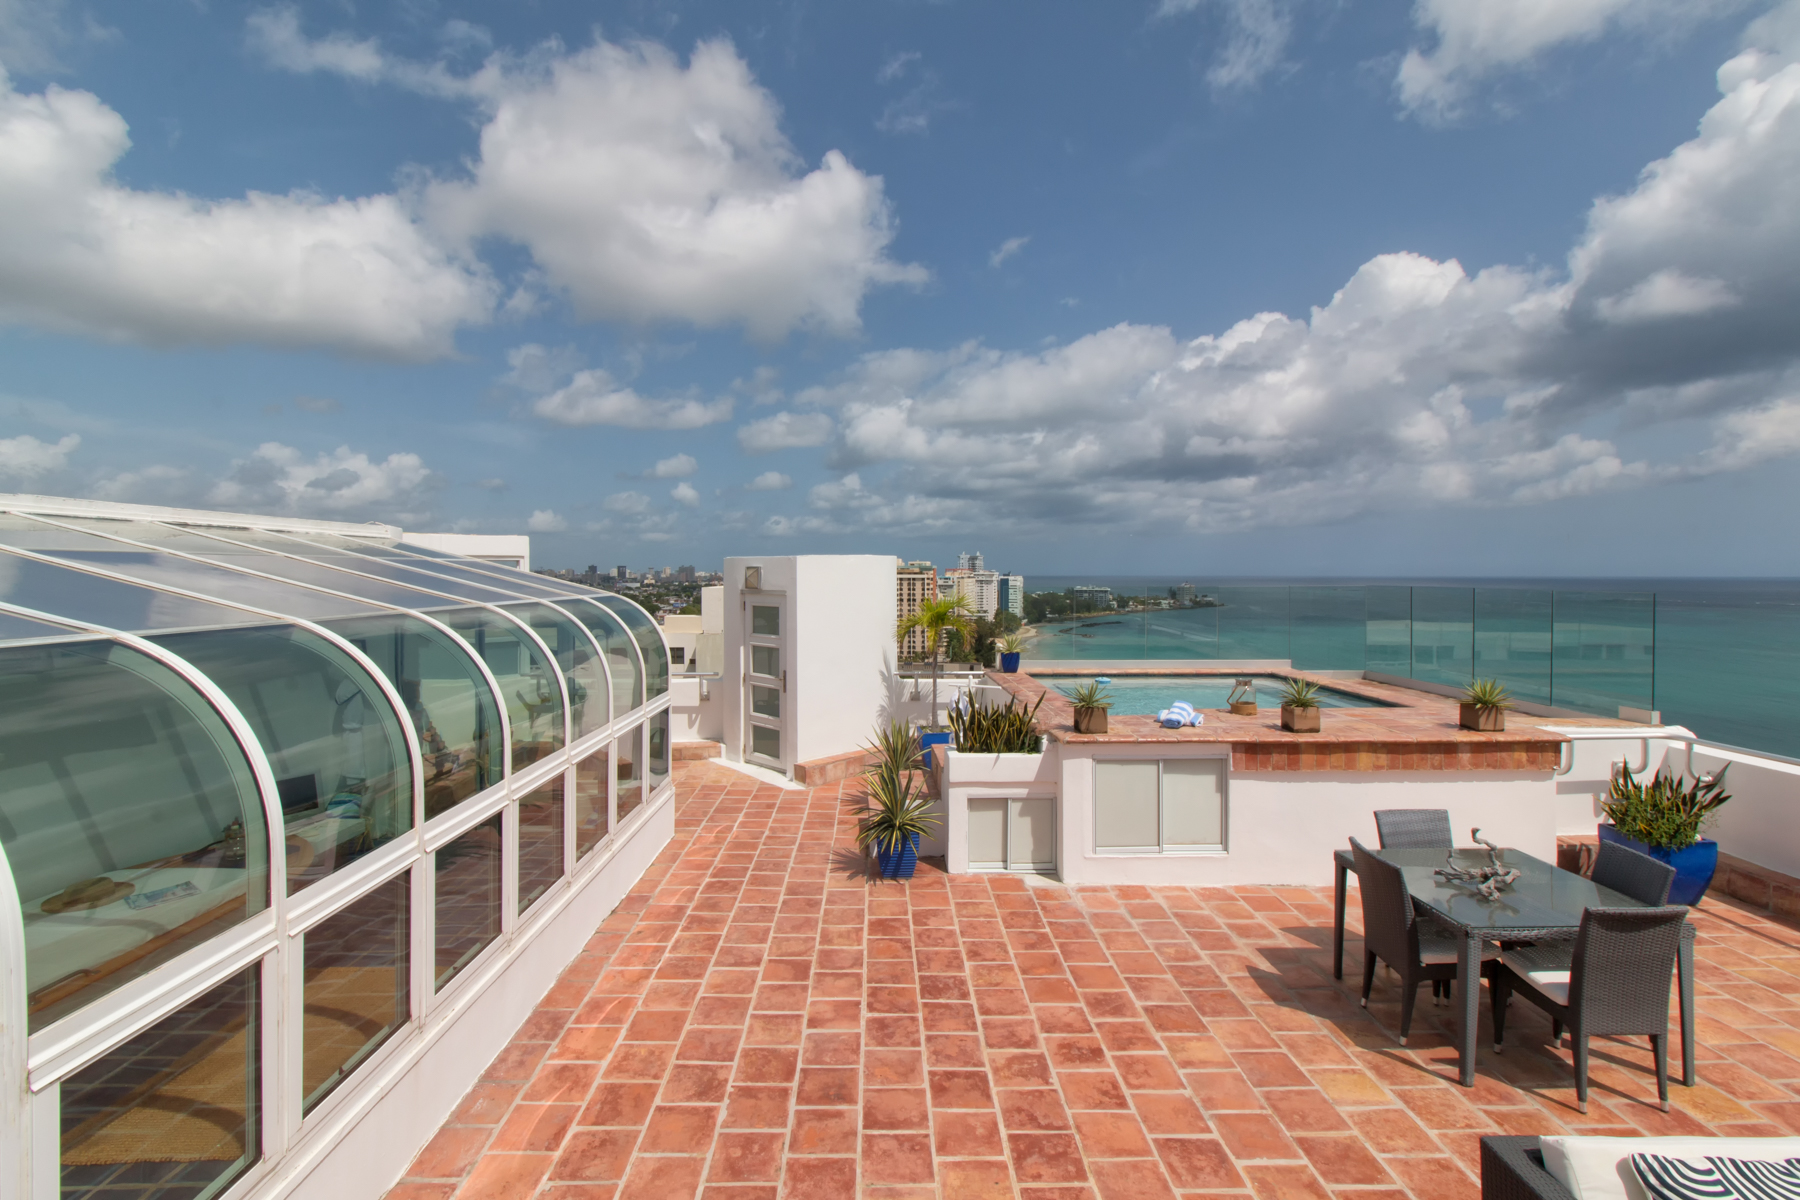 Additional photo for property listing at Oceanfront Penthouse on Isla Verde Beach 4531 Avenida Isla Verde Plaza Atlantico Condominium Carolina, Puerto Rico 00979 Puerto Rico